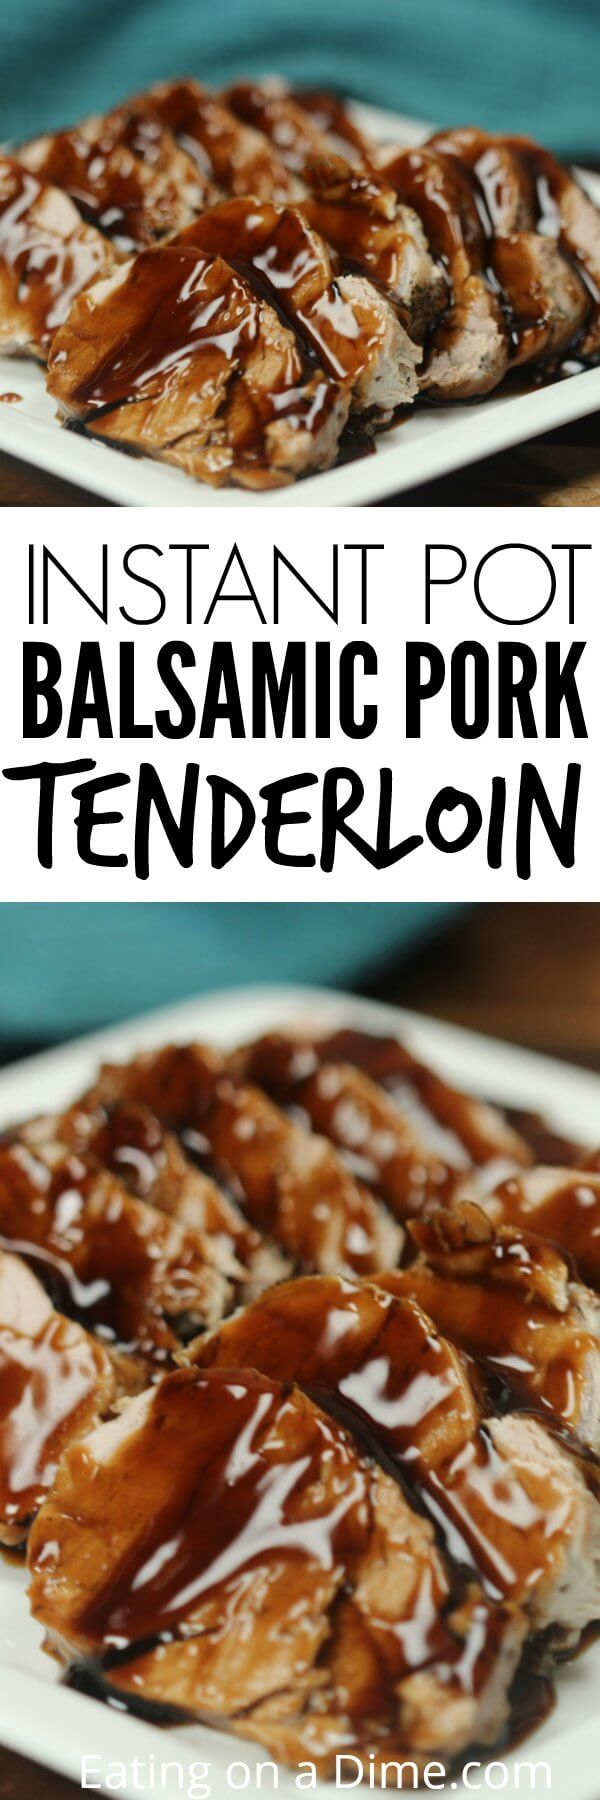 Pork Tenderloin Pressure Cooker Recipe